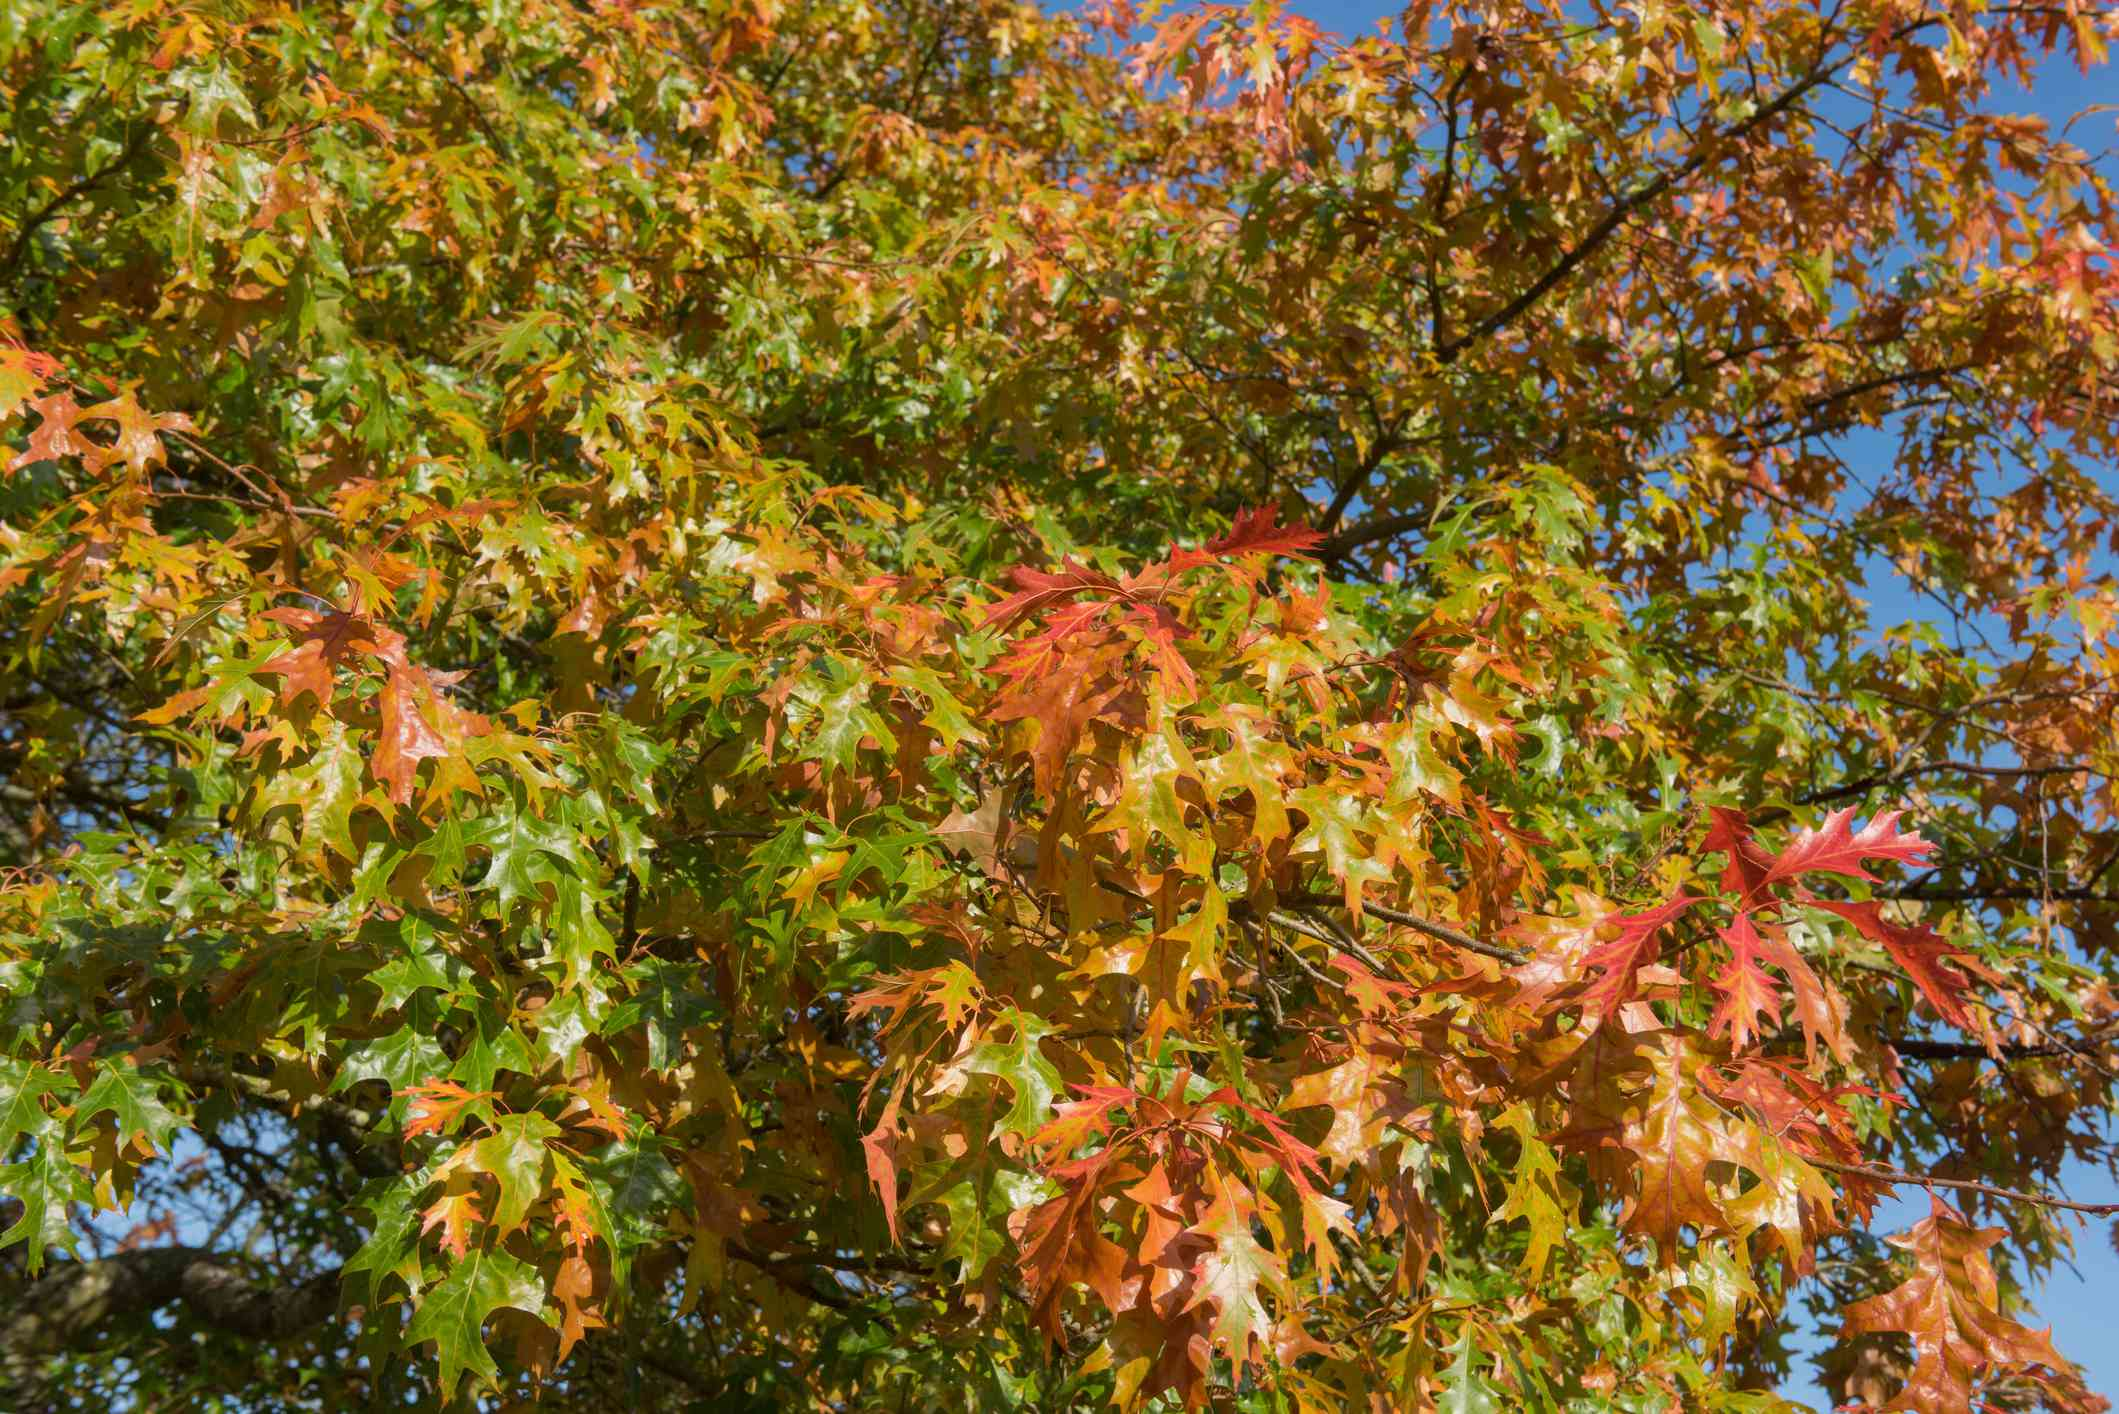 Leaves of a Pin Oak tree changing color.